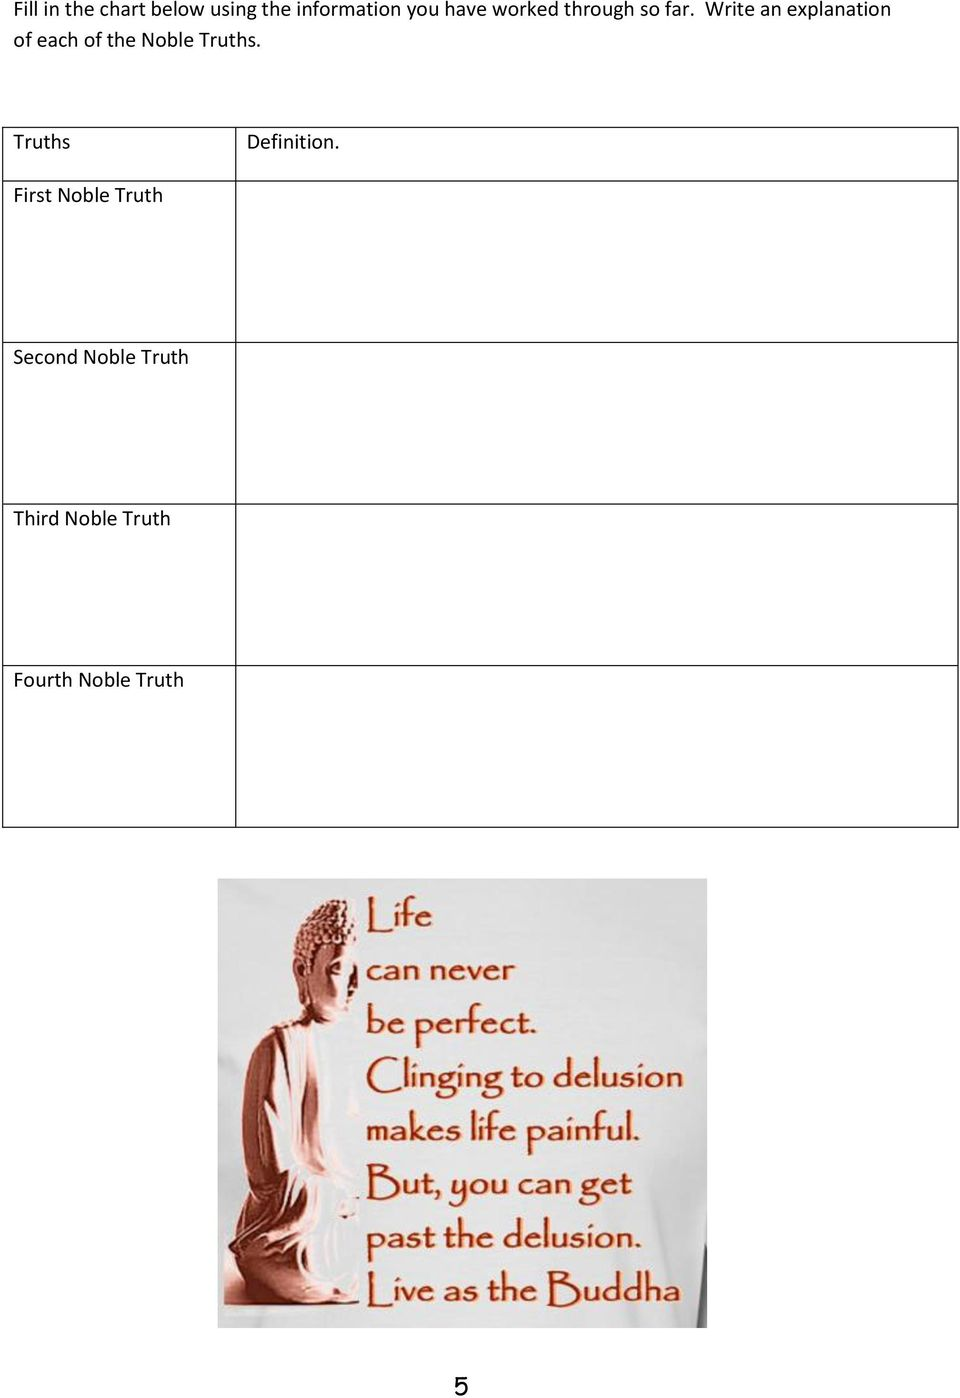 Write an explanation of each of the Noble Truths.